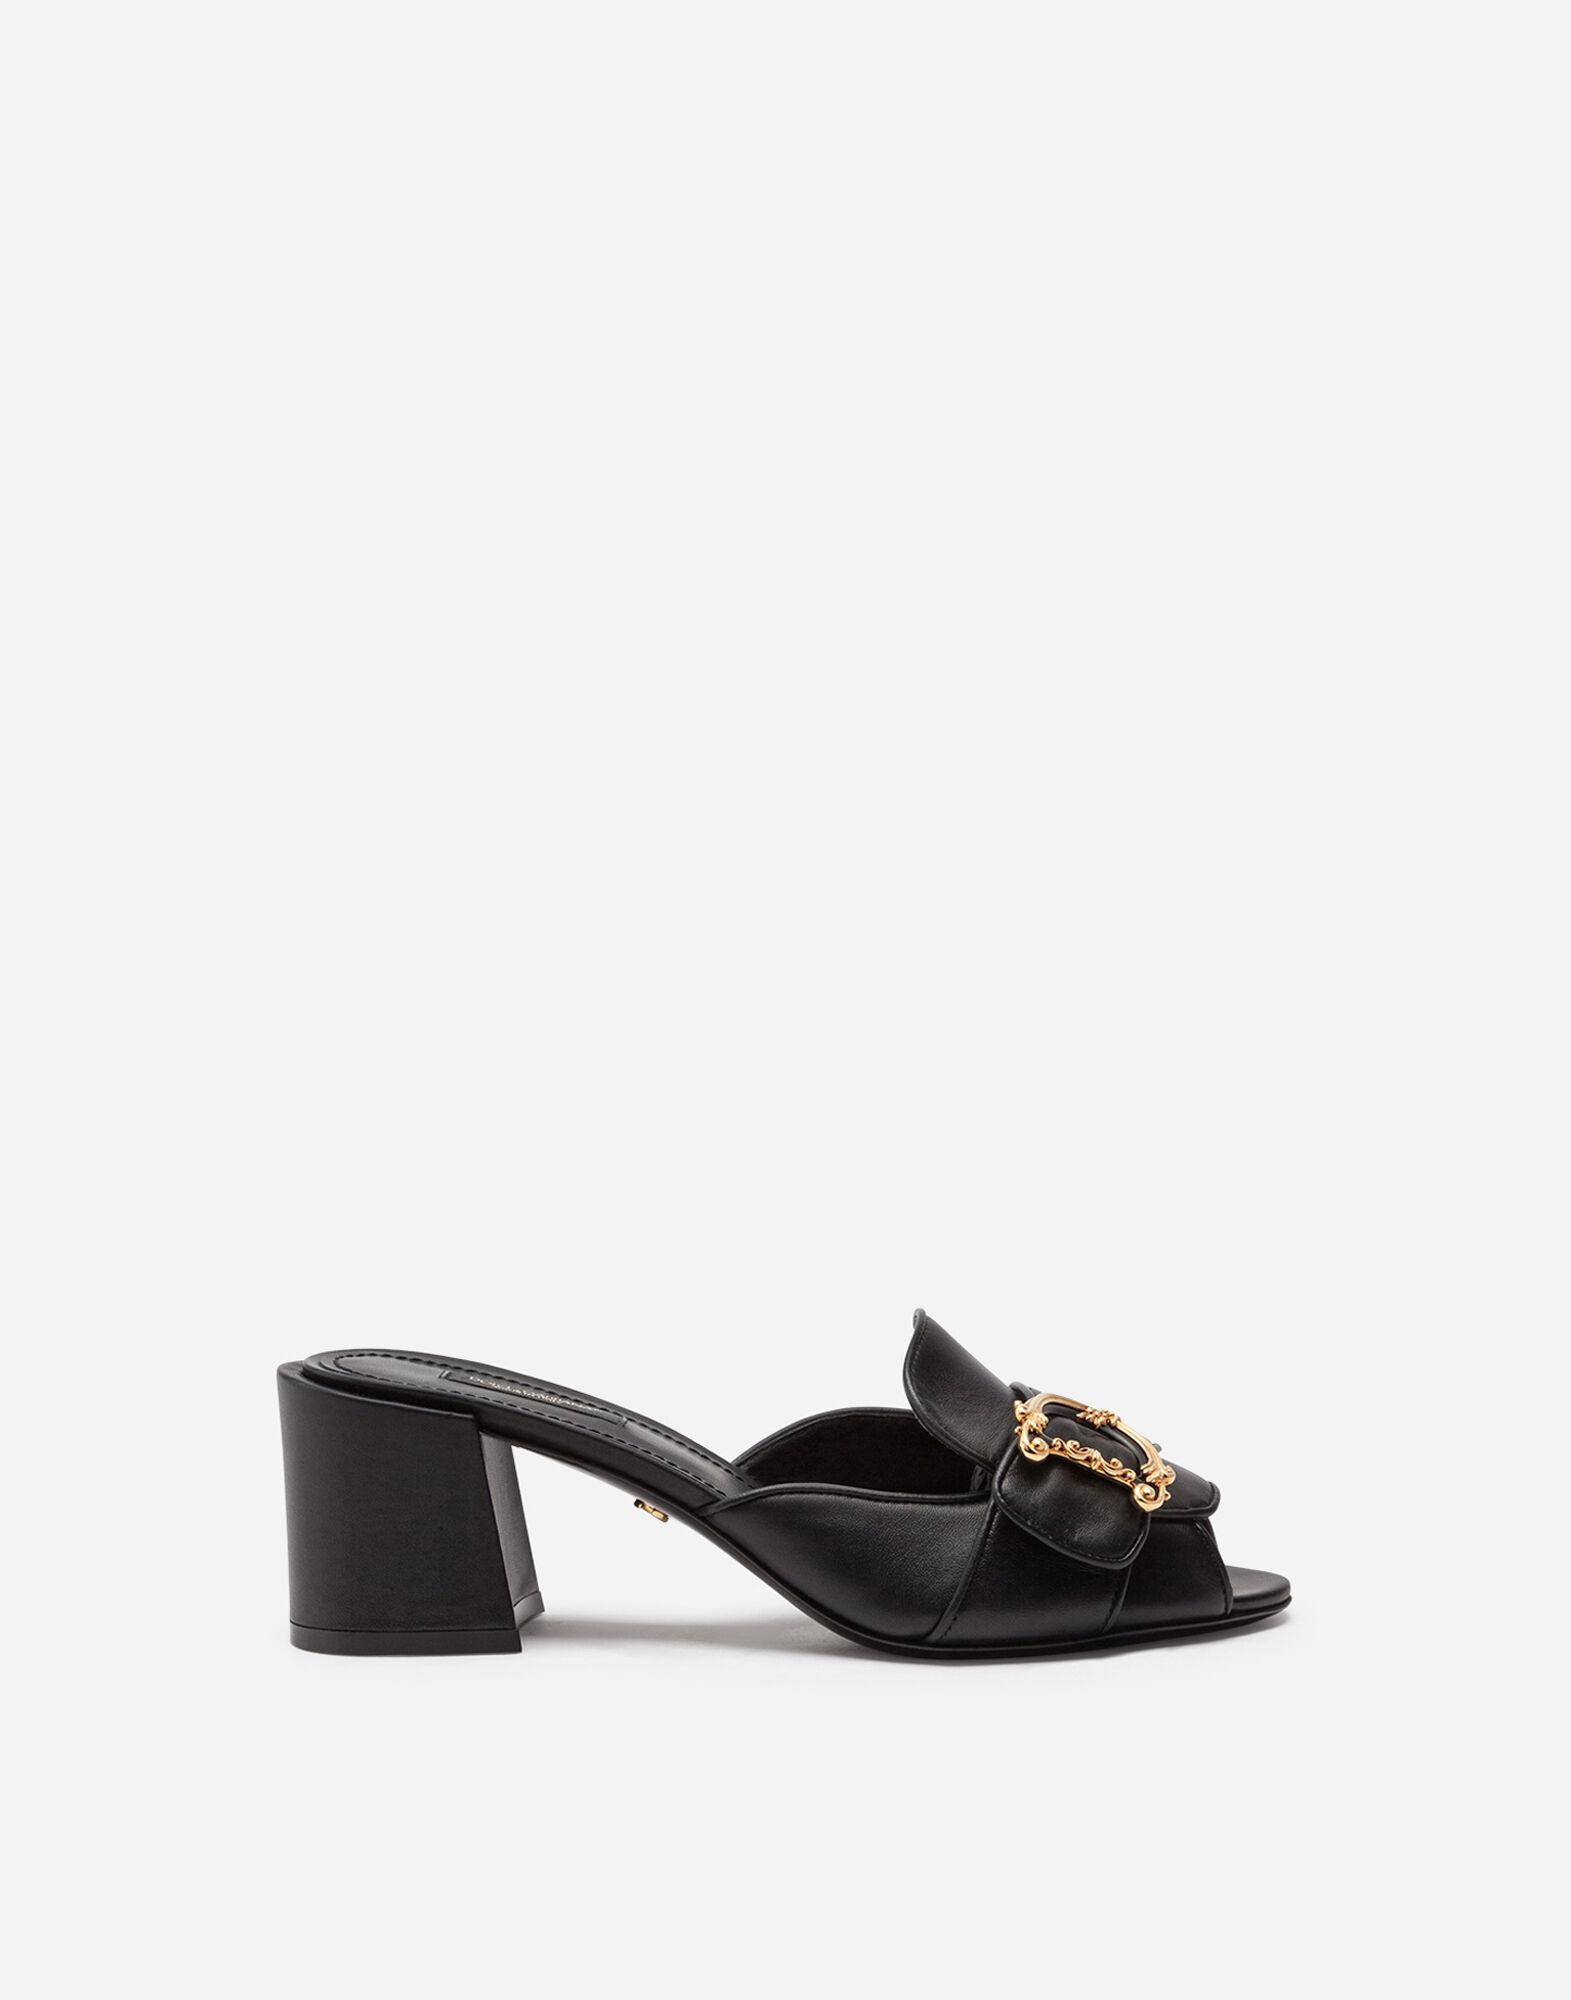 Nappa leather sliders with baroque DG